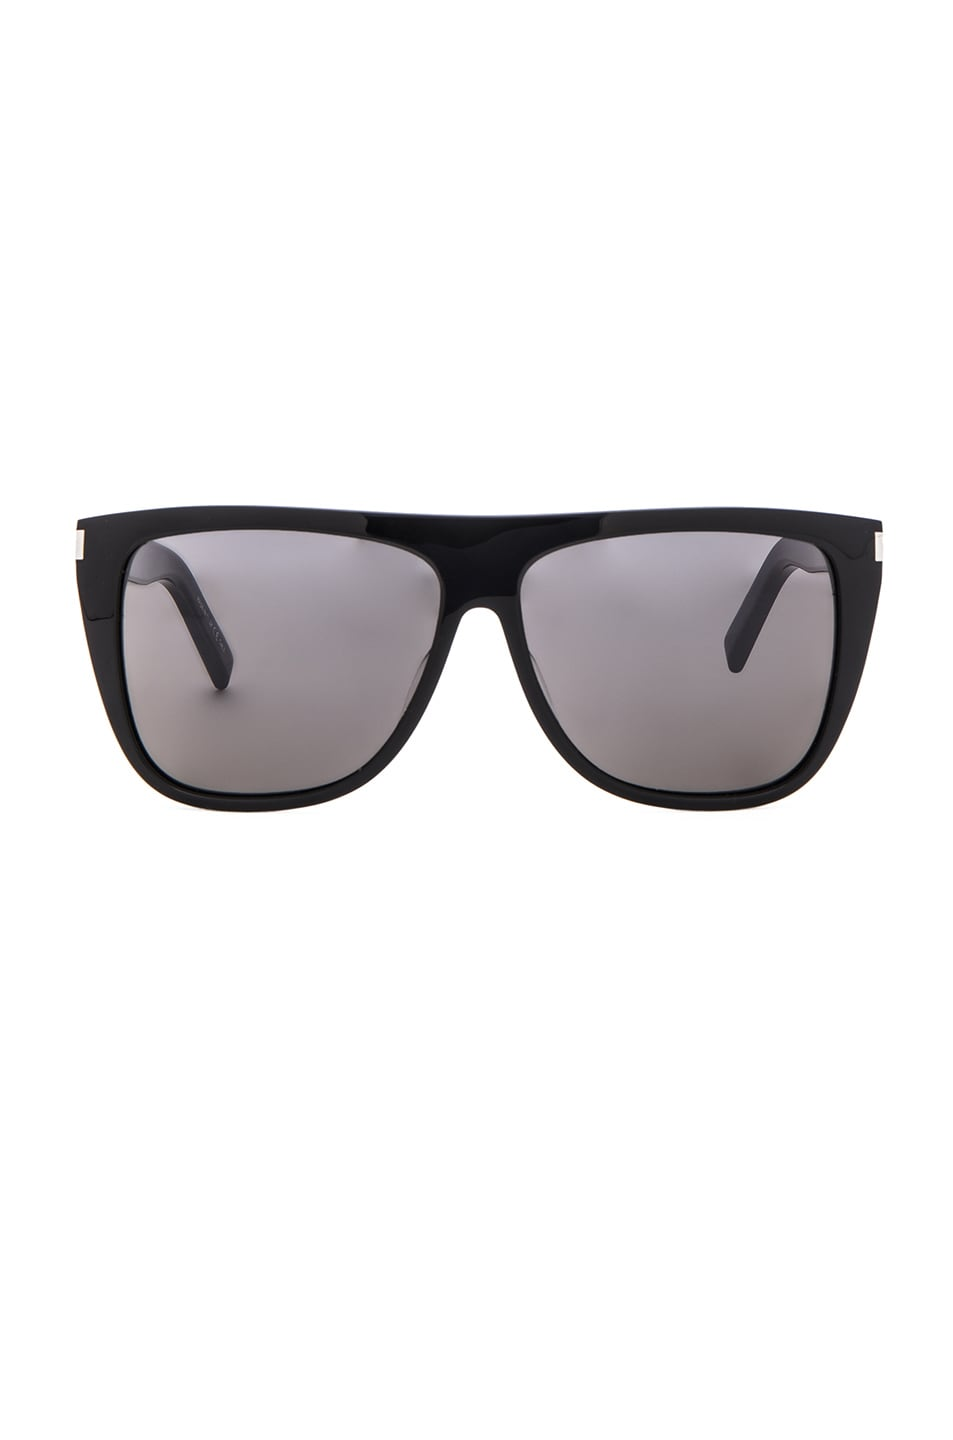 Image 1 of Saint Laurent SL 1 Sunglasses in Black